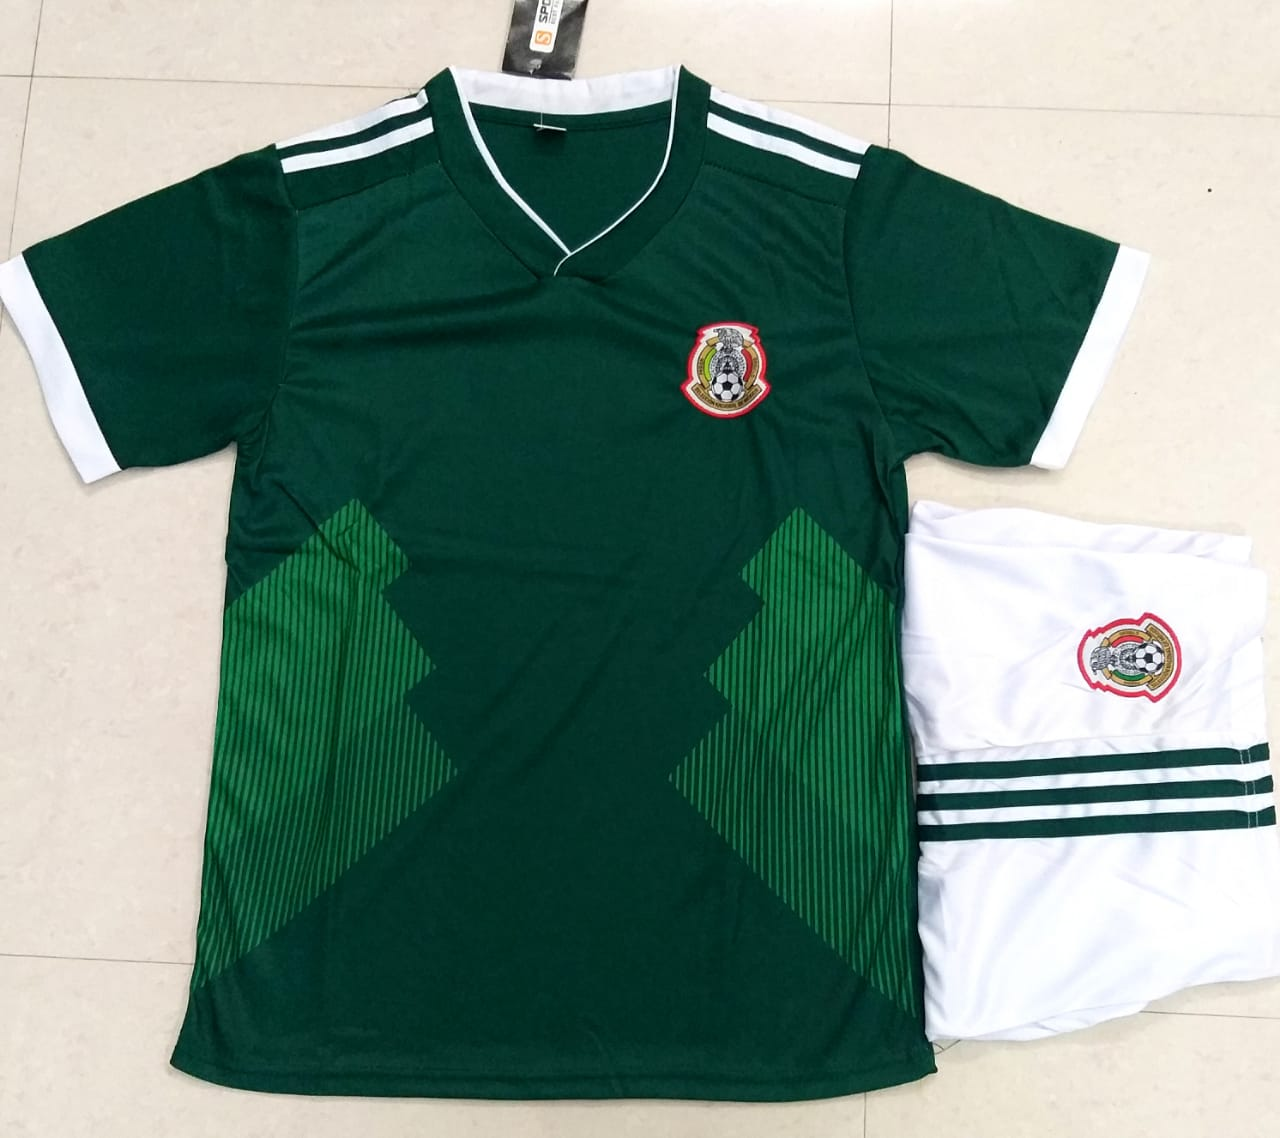 dd3ea59efd8 Mexico Football Jersey FIFA World Cup 2018 replica kit online India ...